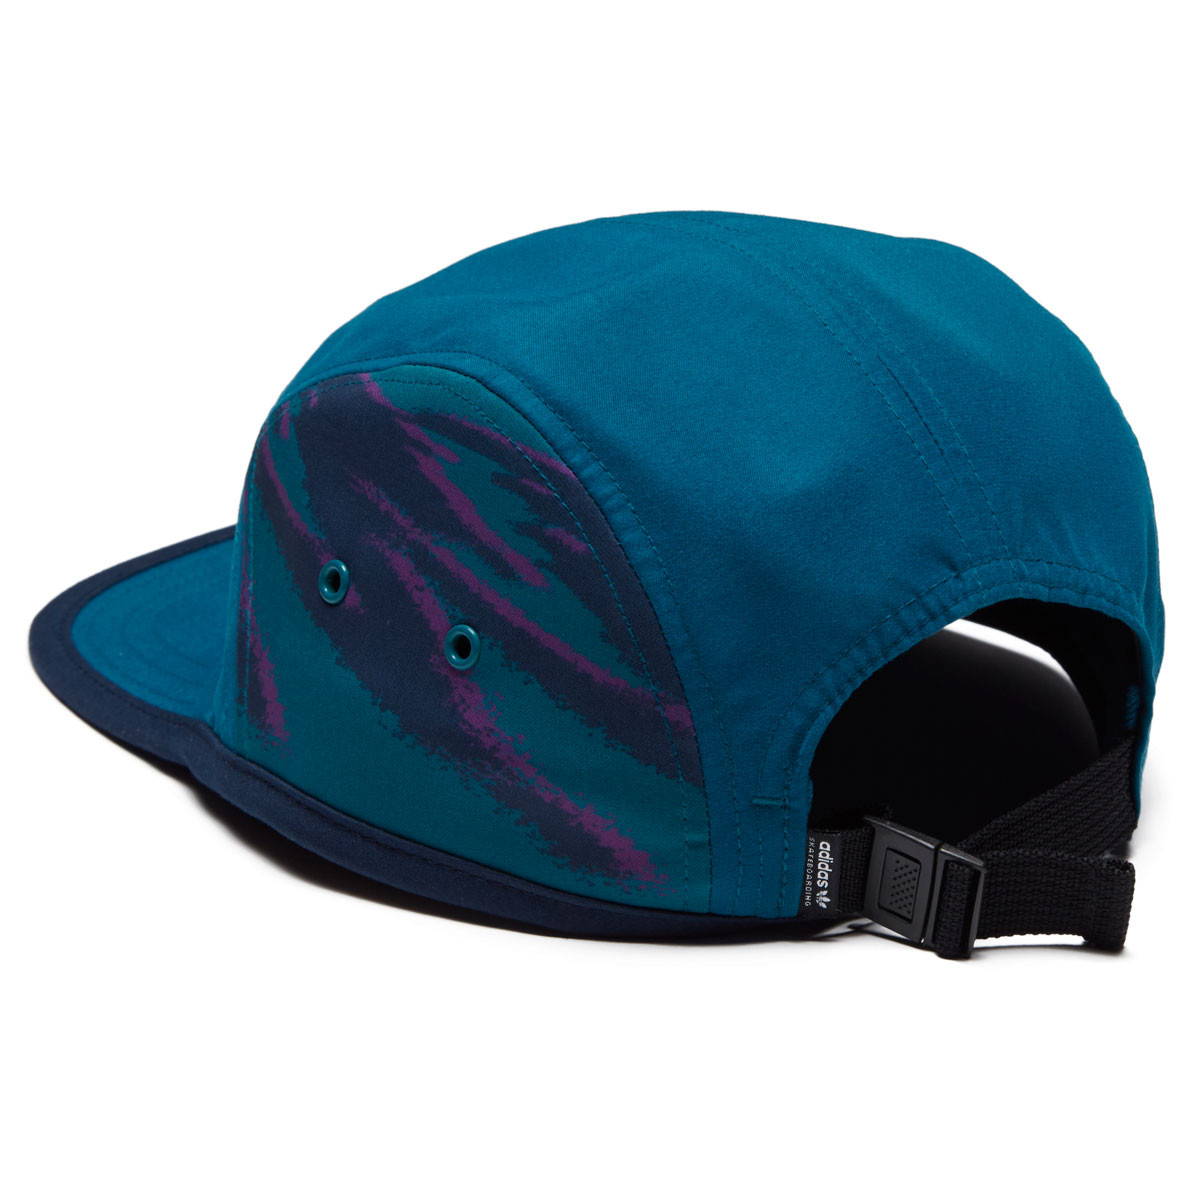 175926d7759 Adidas Court 5 Panel Hat - Real Teal